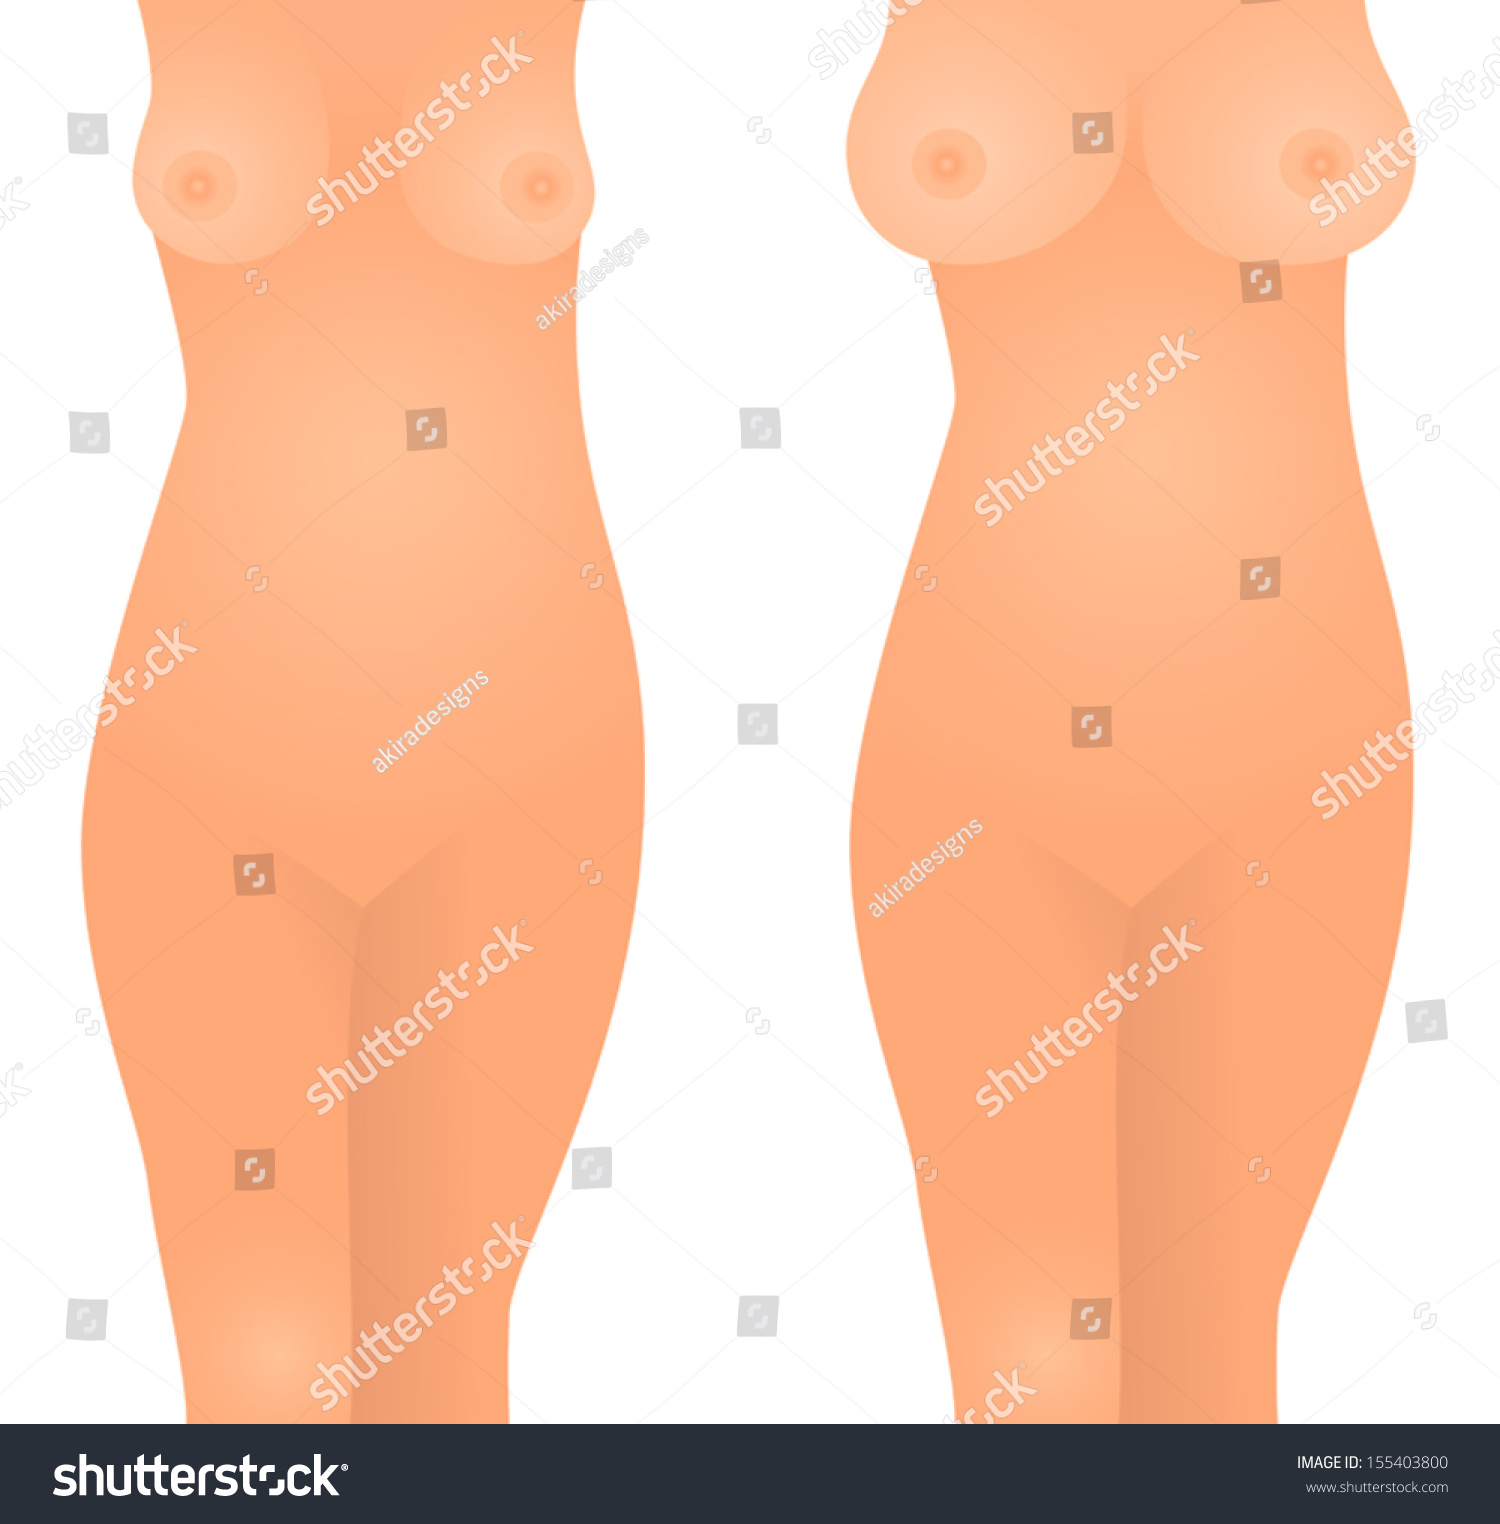 Vector illustration of woman before and after getting breast implants  plastic surgery, small and large